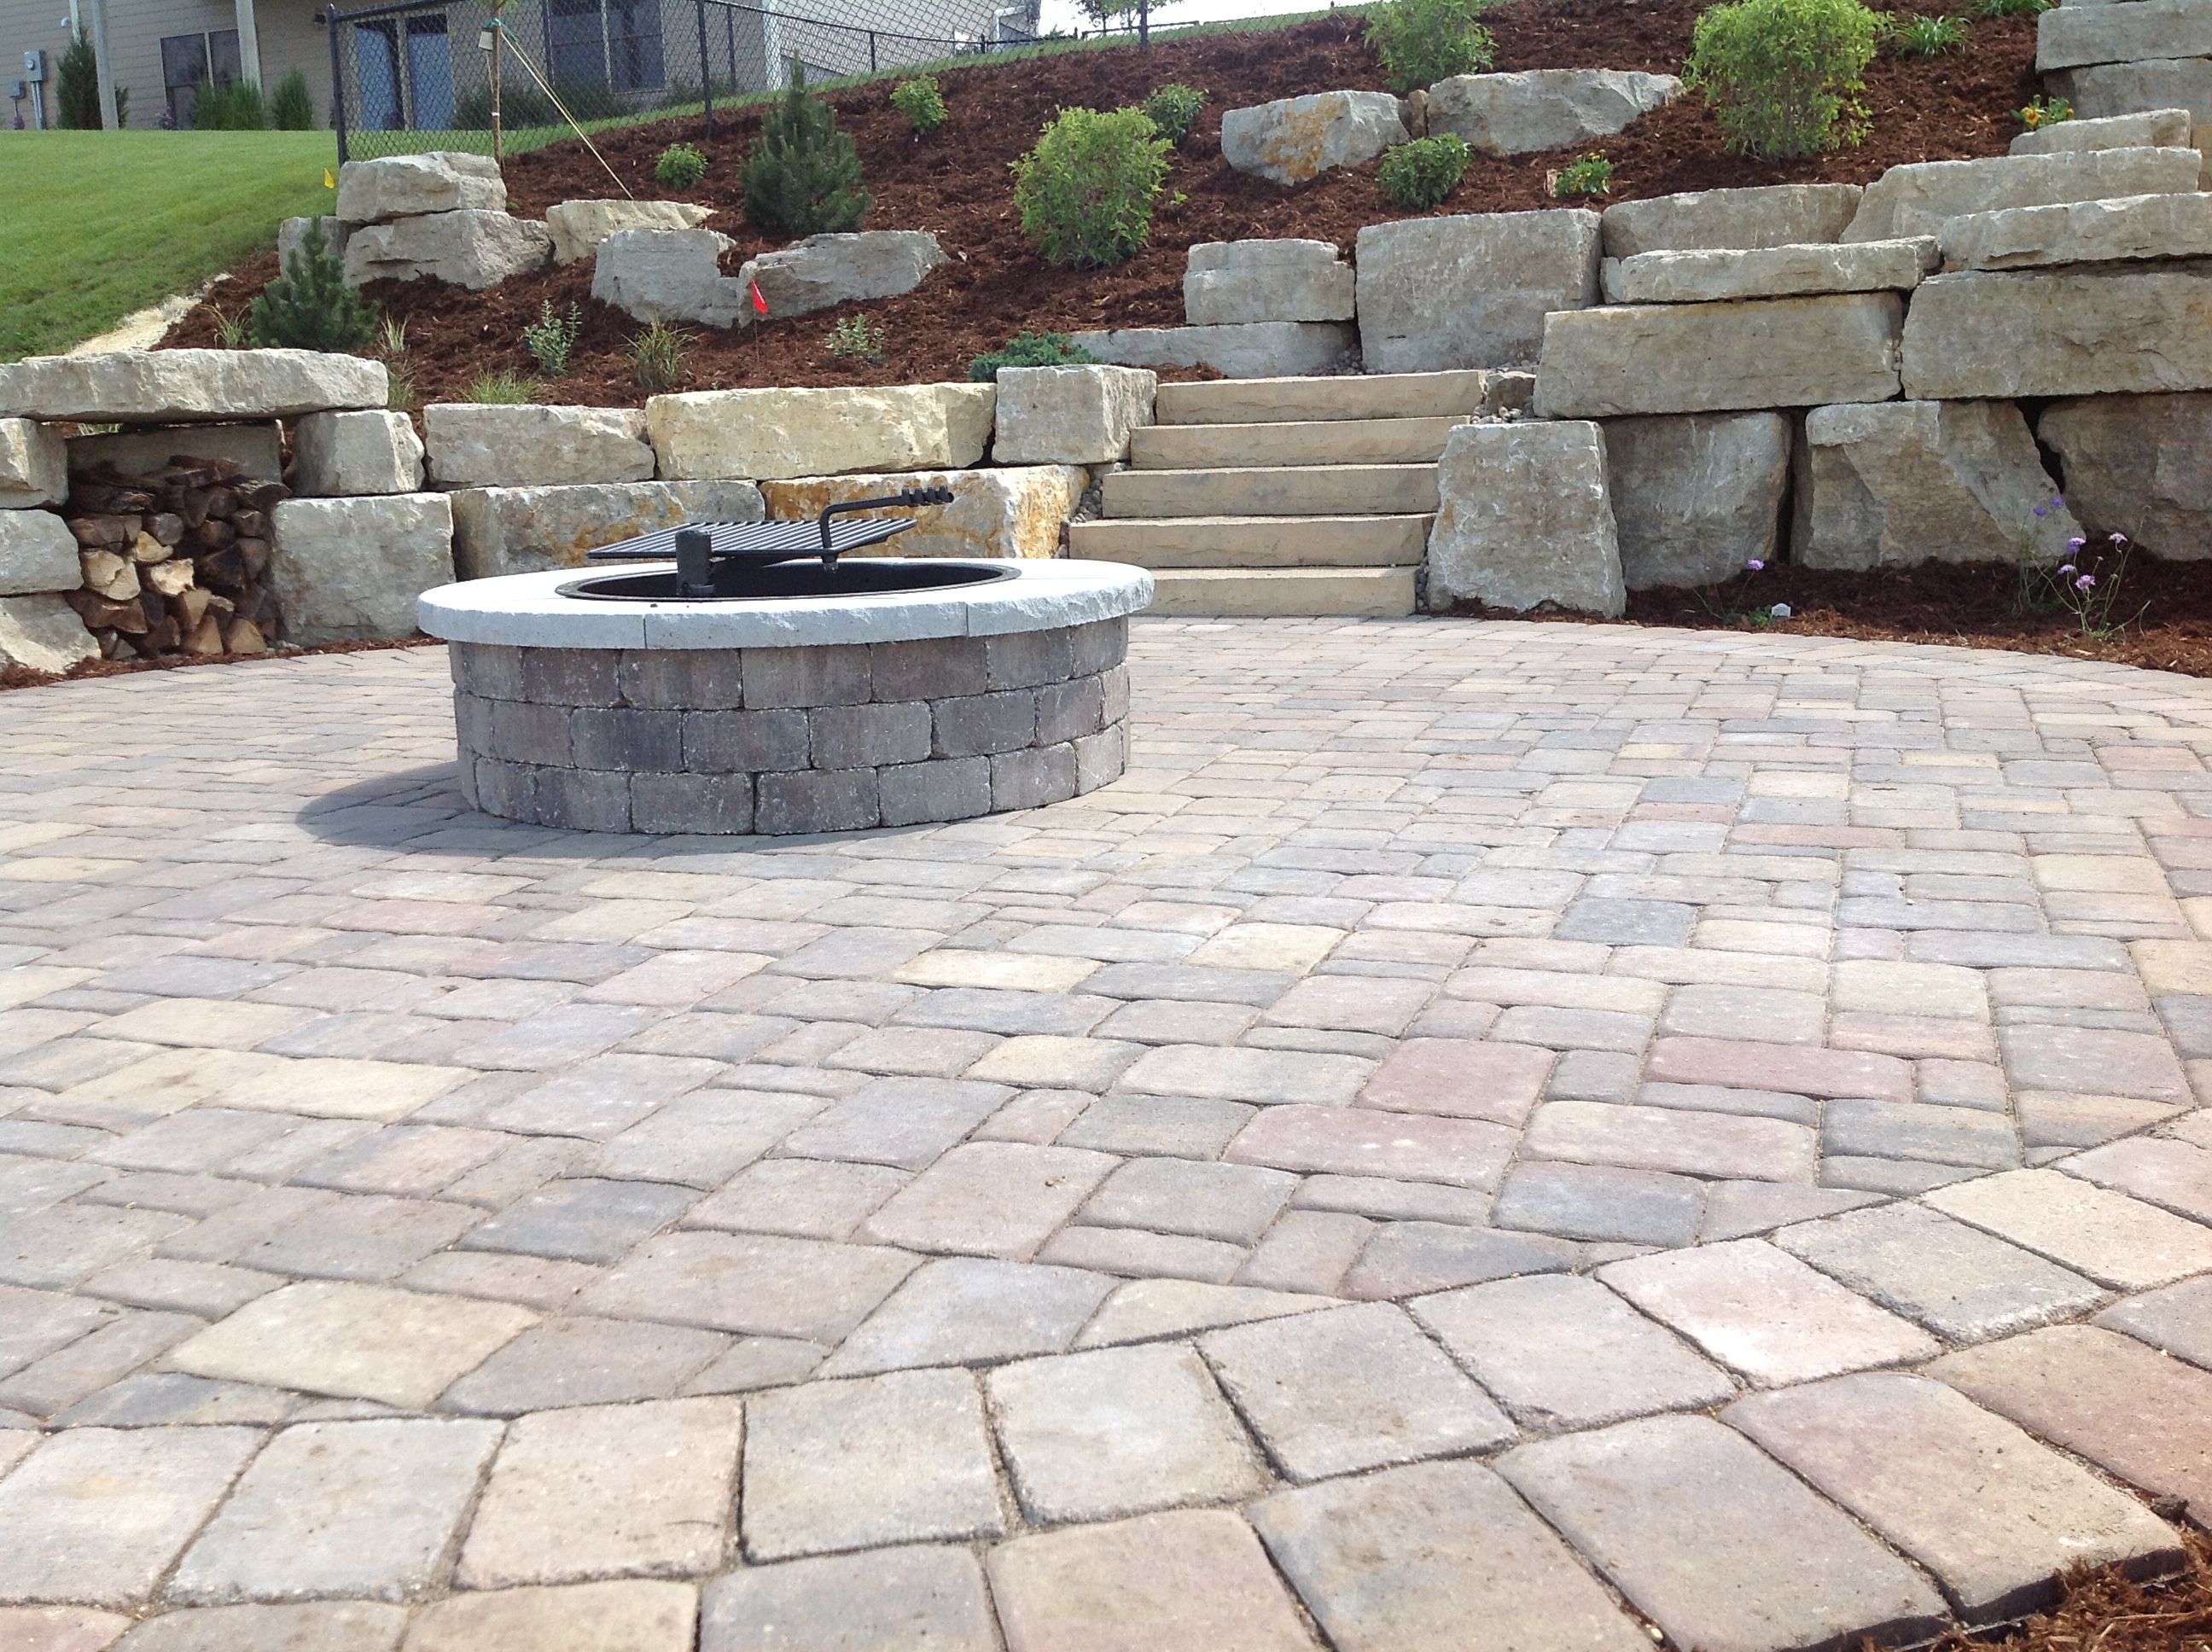 interlock colonial paver bricks with a rcp lakeland firepit and